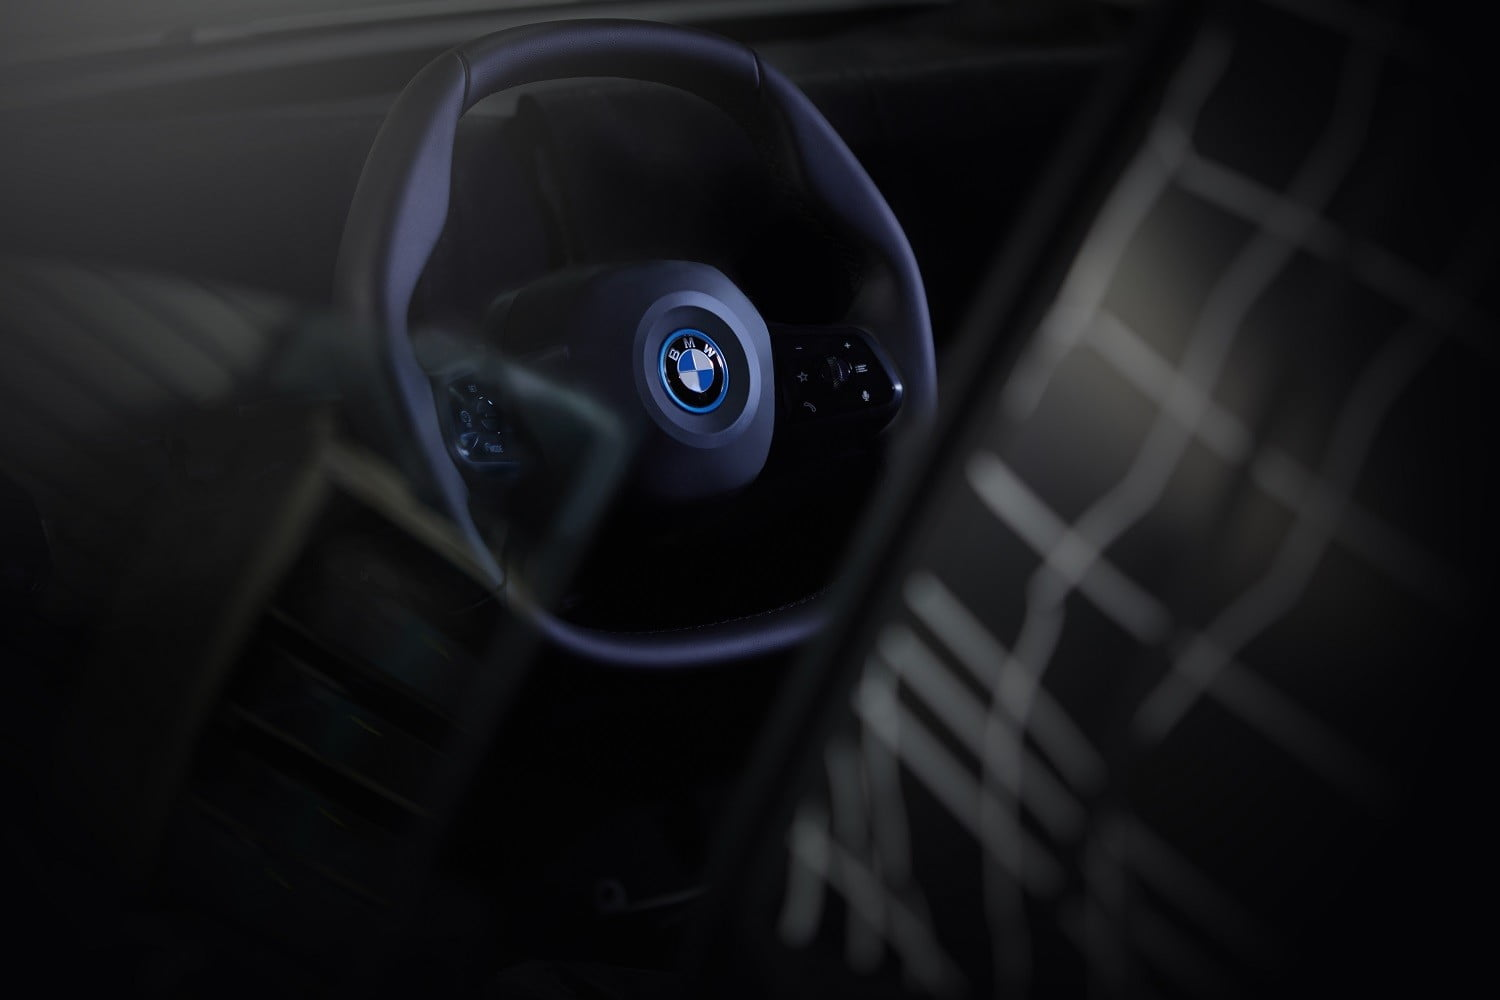 bmw inext will be an electric autonomous connected tech flagship polygonal steering wheel